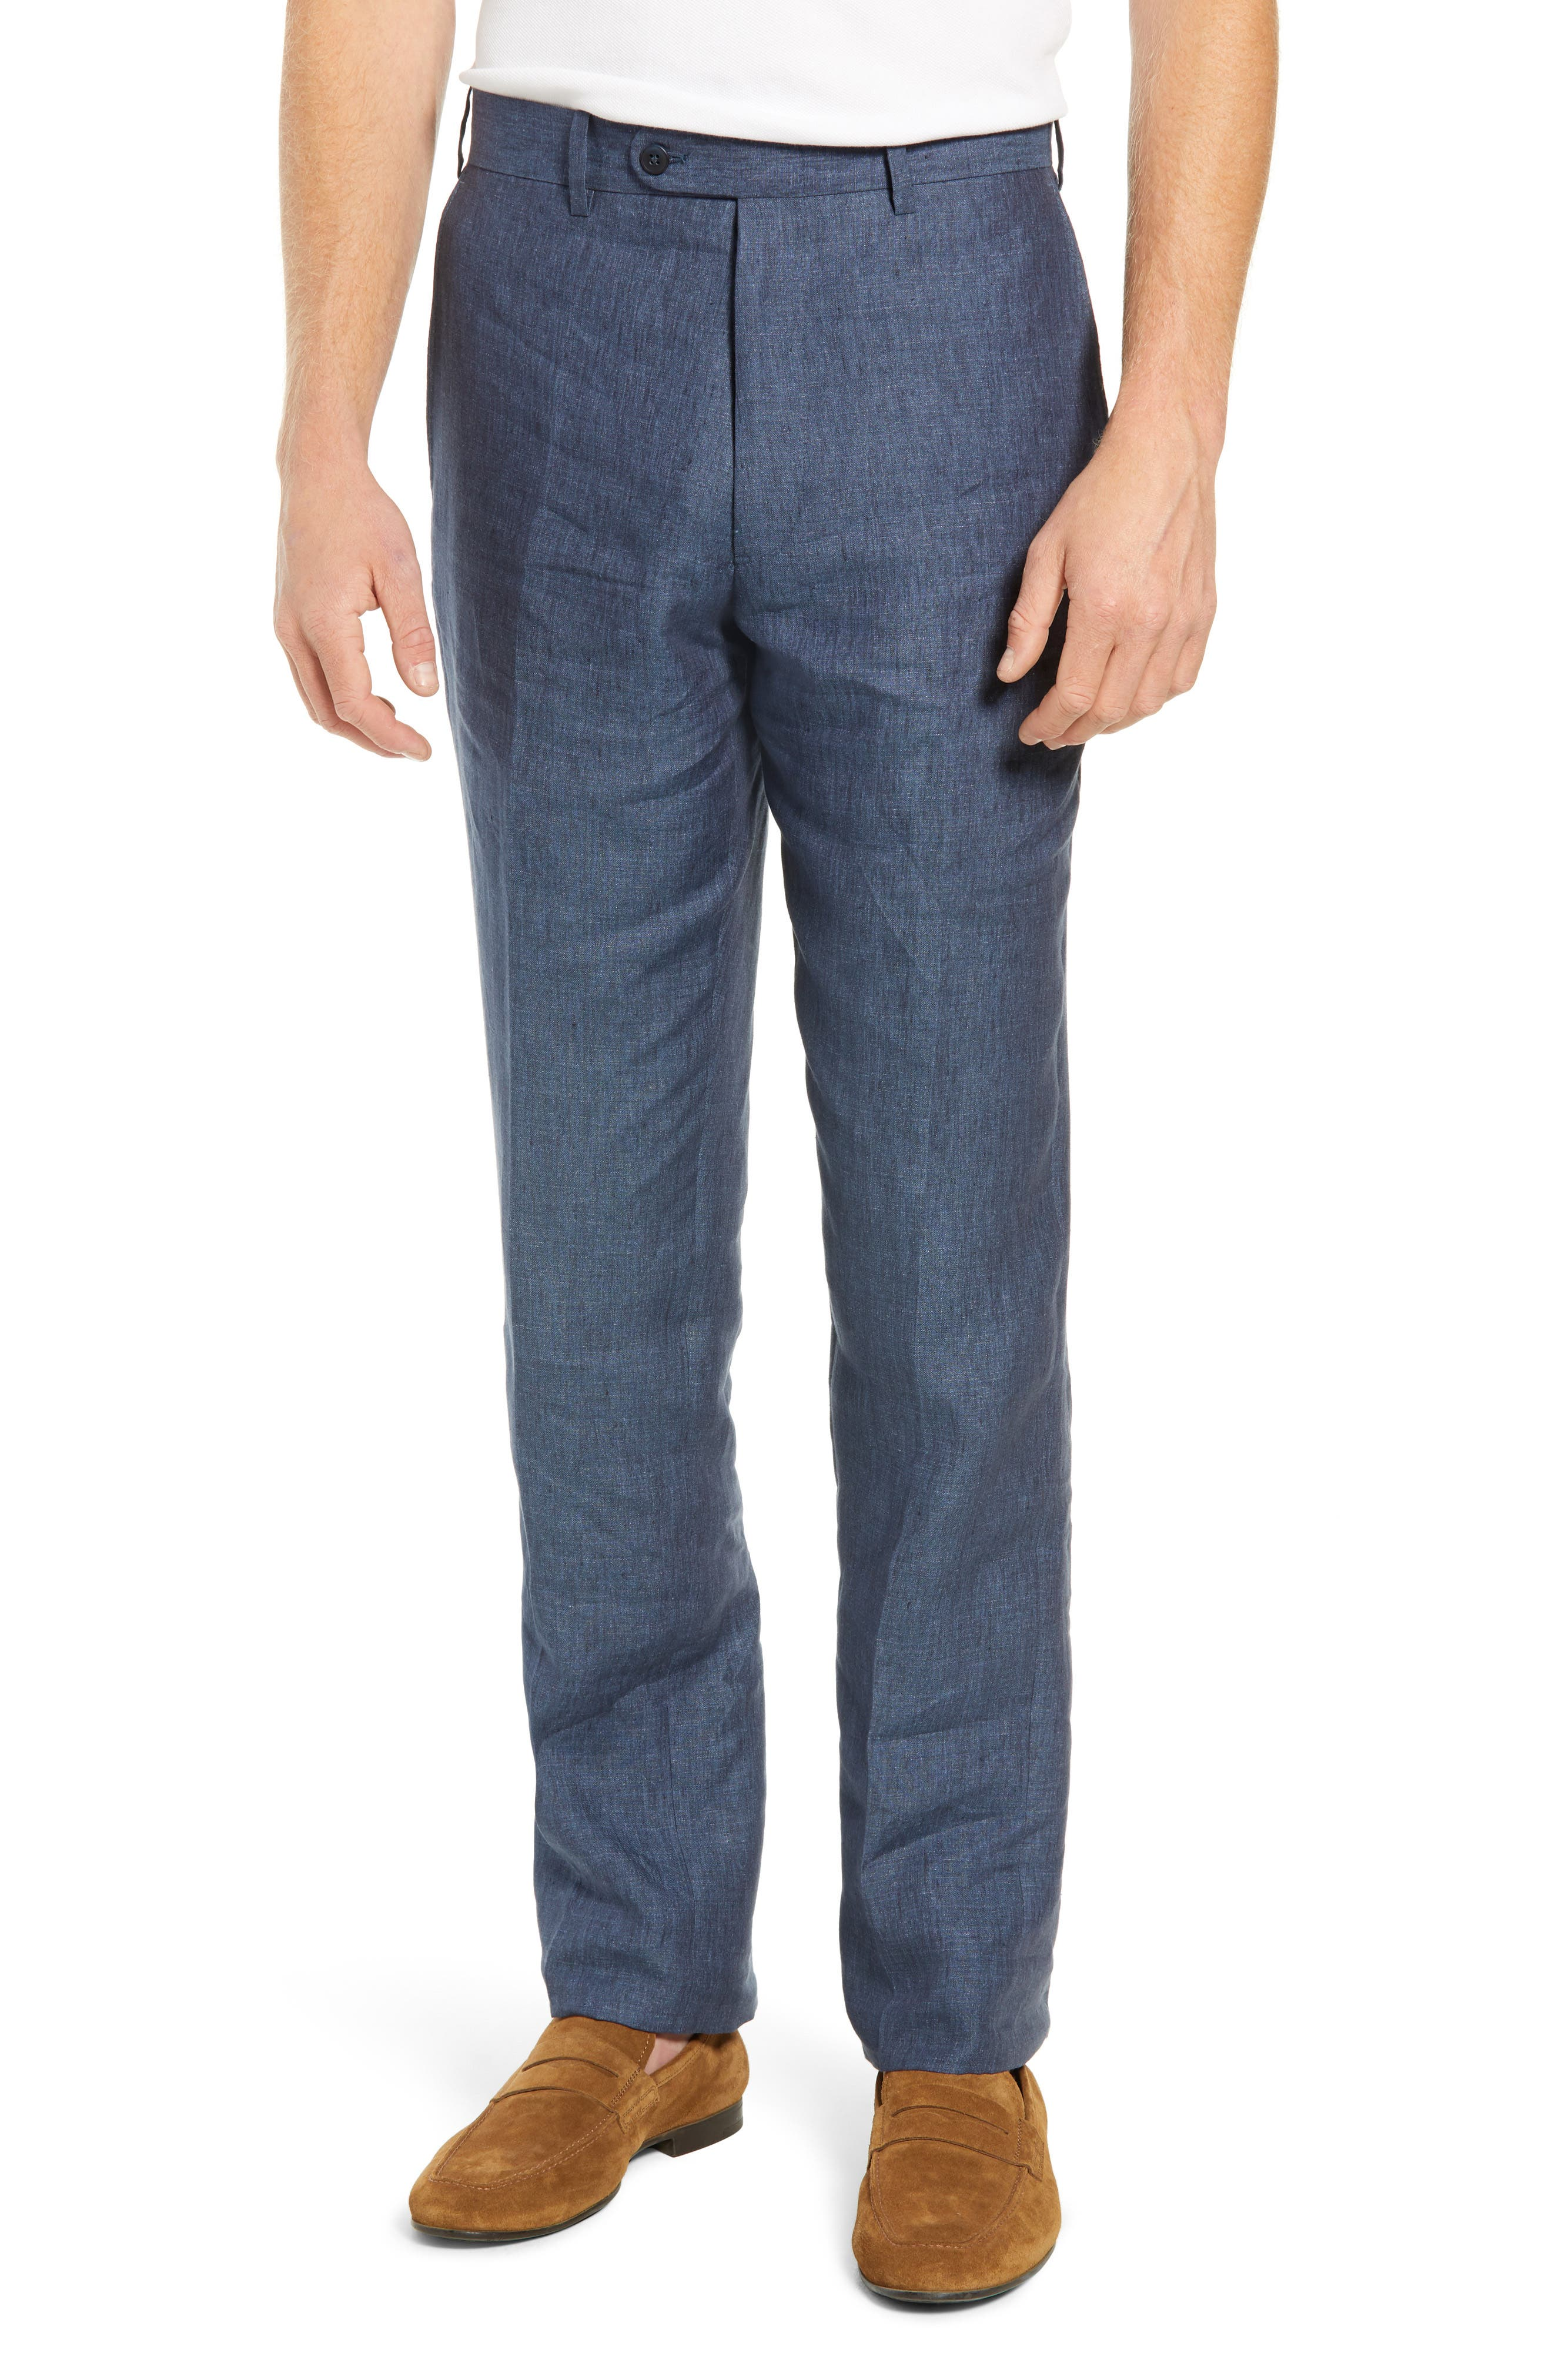 JOHN W. NORDSTROM<SUP>®</SUP>, Torino Flat Front Solid Linen Trousers, Main thumbnail 1, color, 420